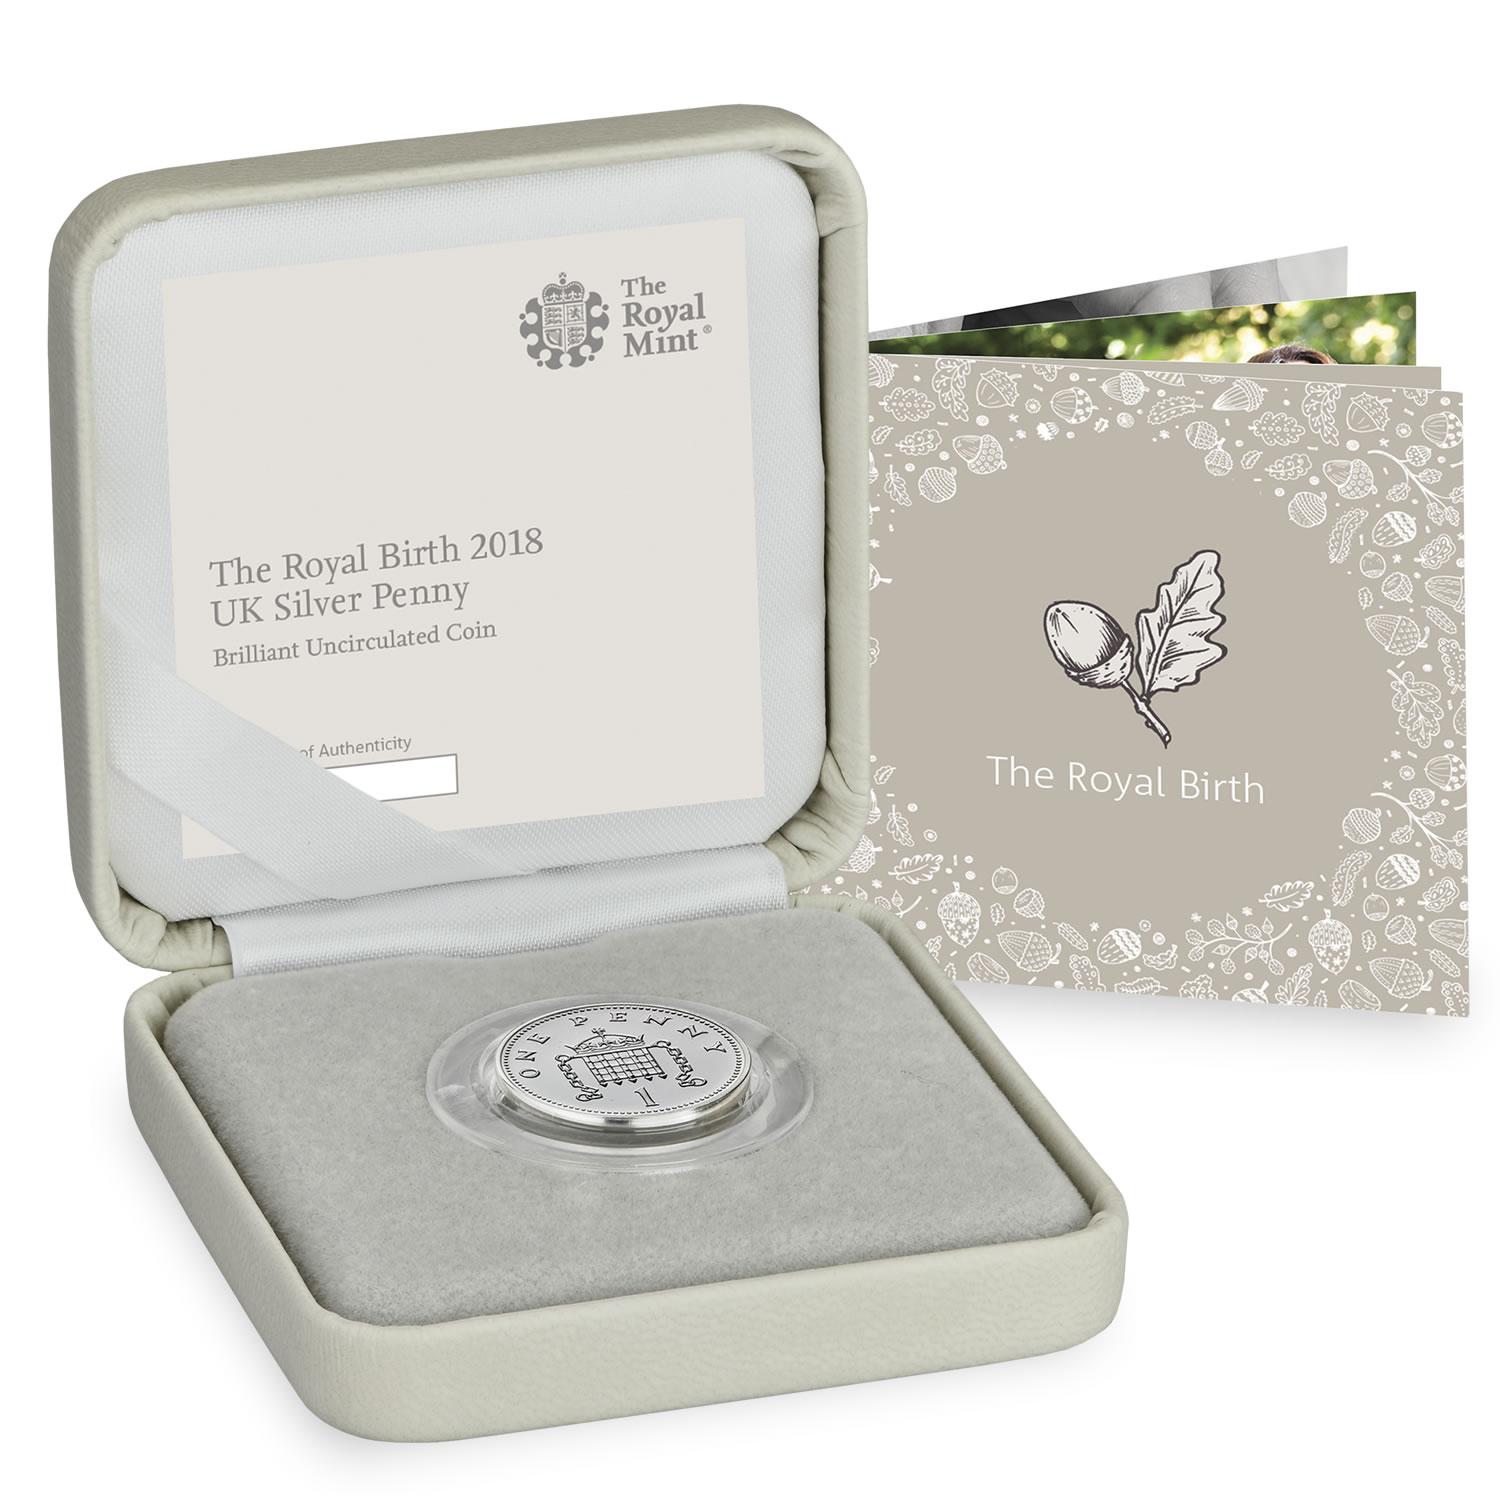 Royal Baby 2018 UK Silver Penny Brilliant Uncirculated Coin